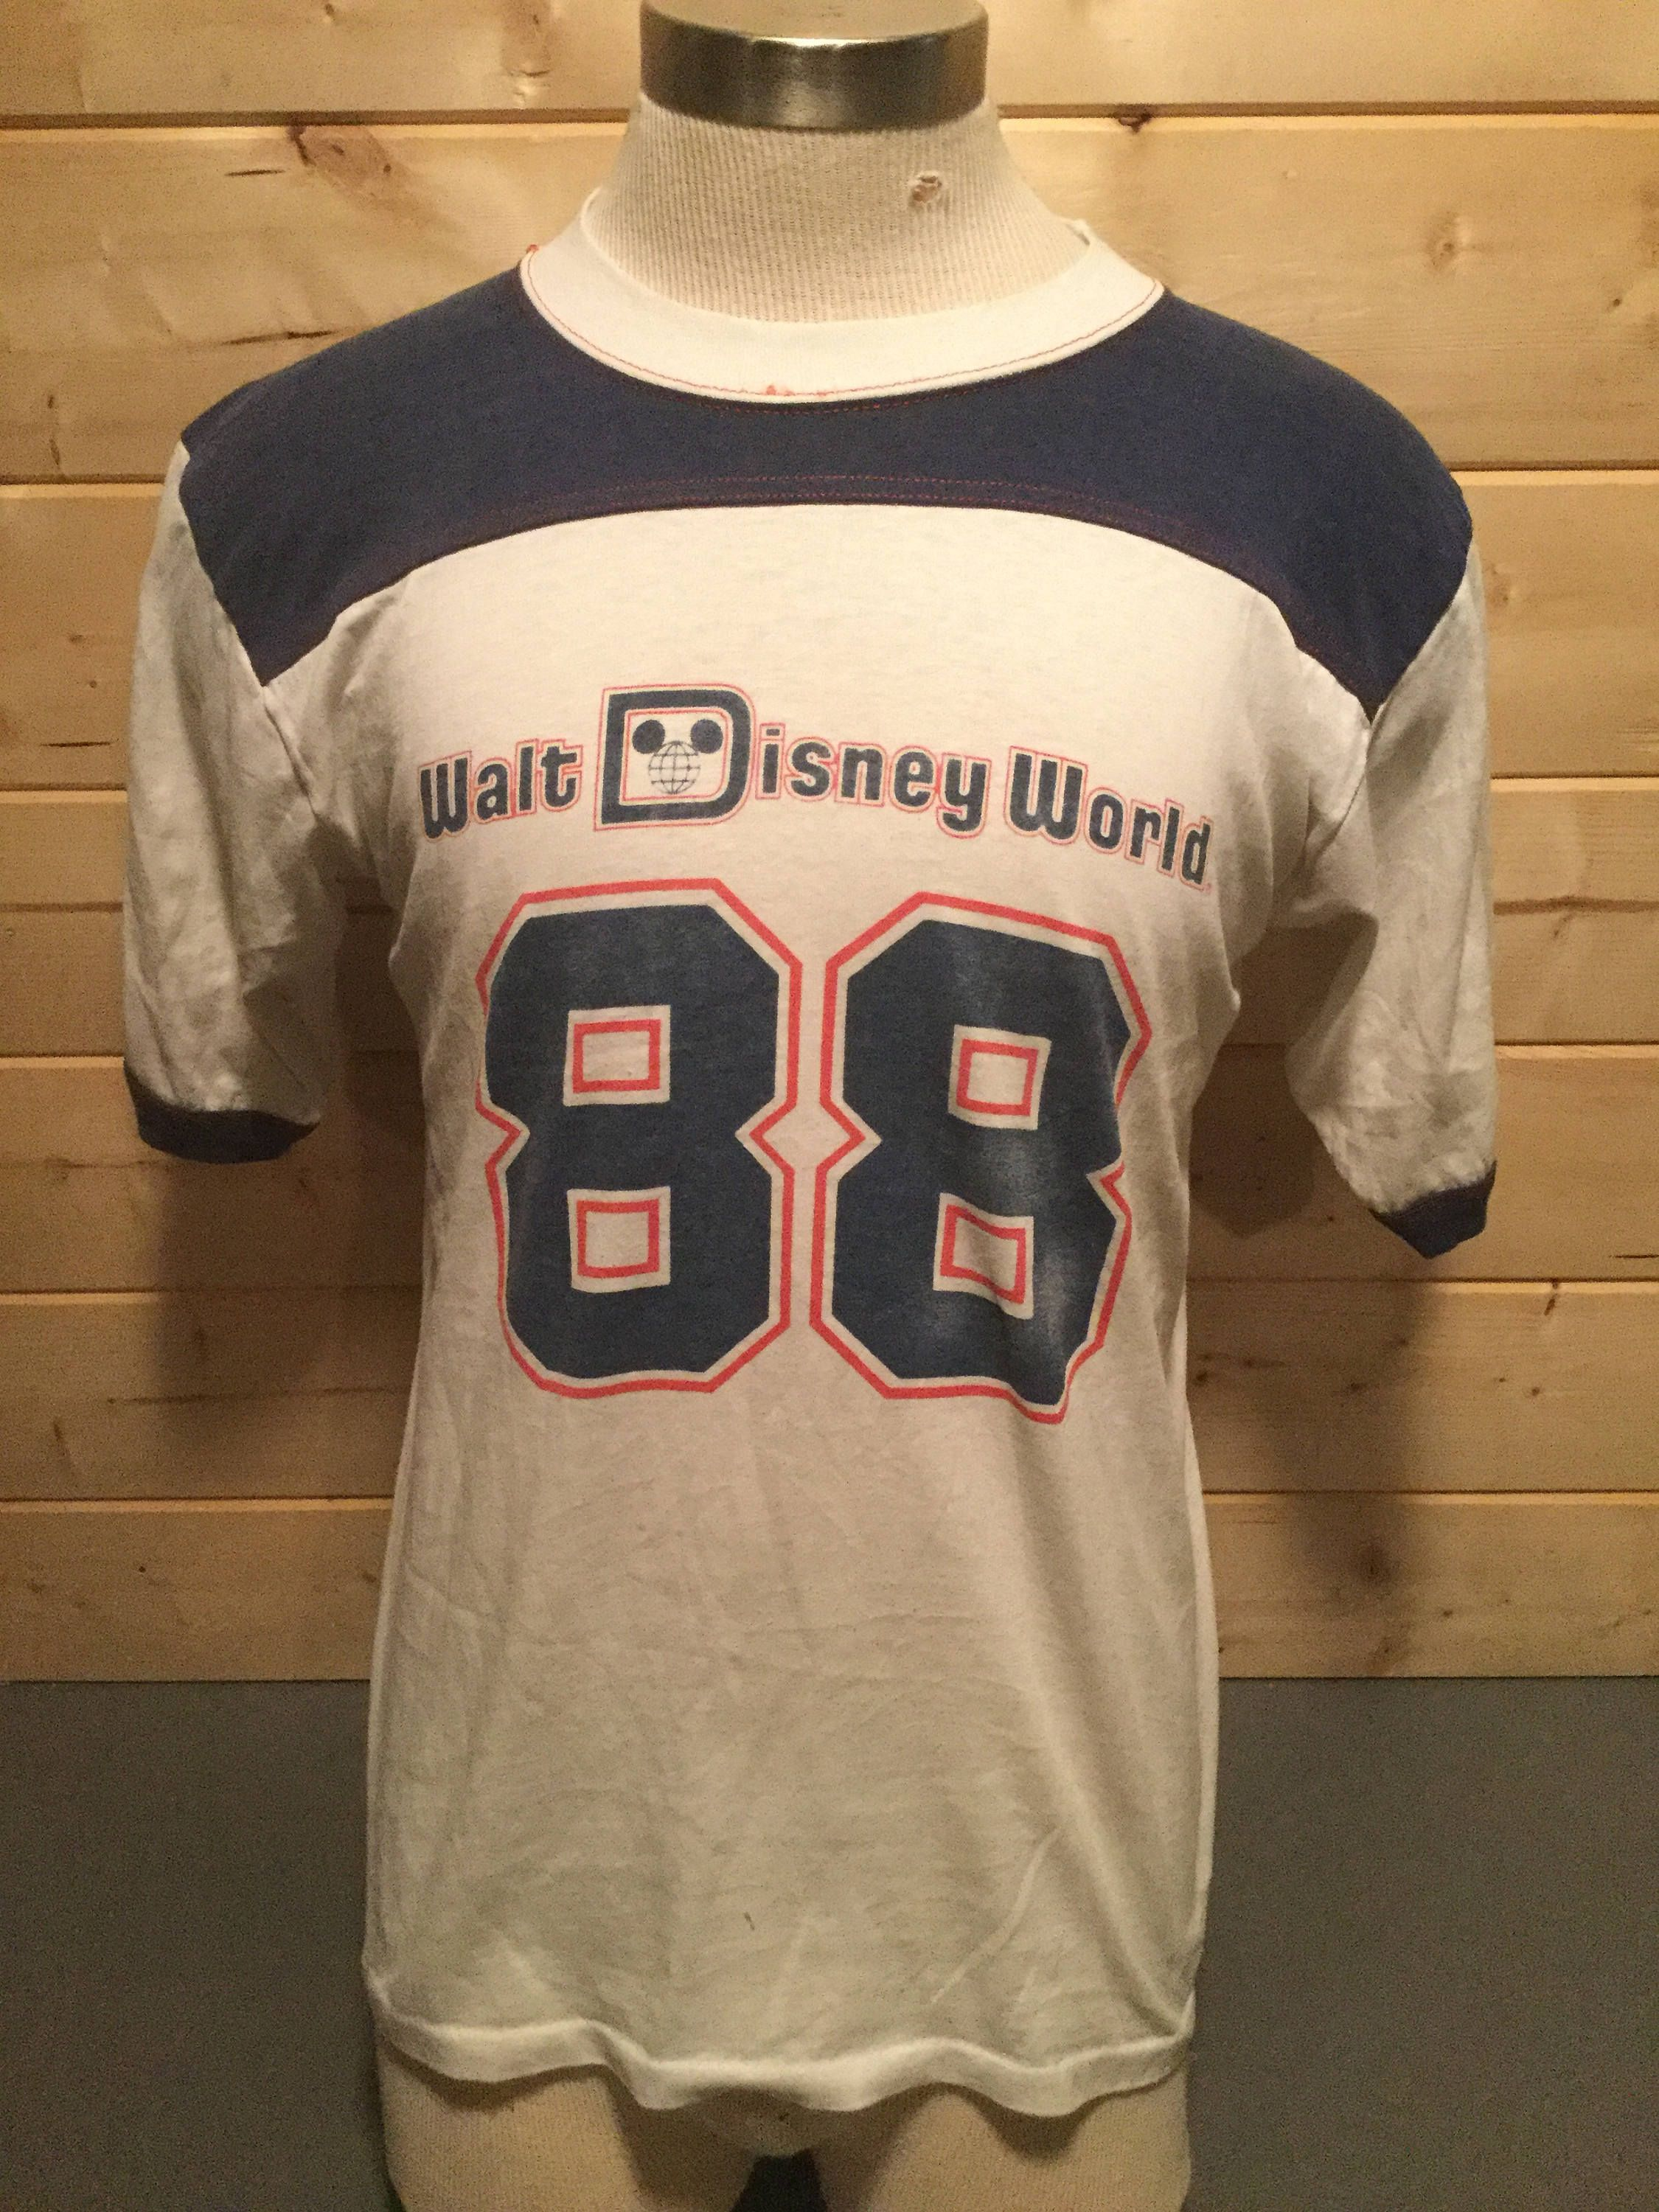 Vintage 1988 Walt Disney World 88 Jersey 50 50 T-Shirt Great Made in USA by  413productions on Etsy 098c65497